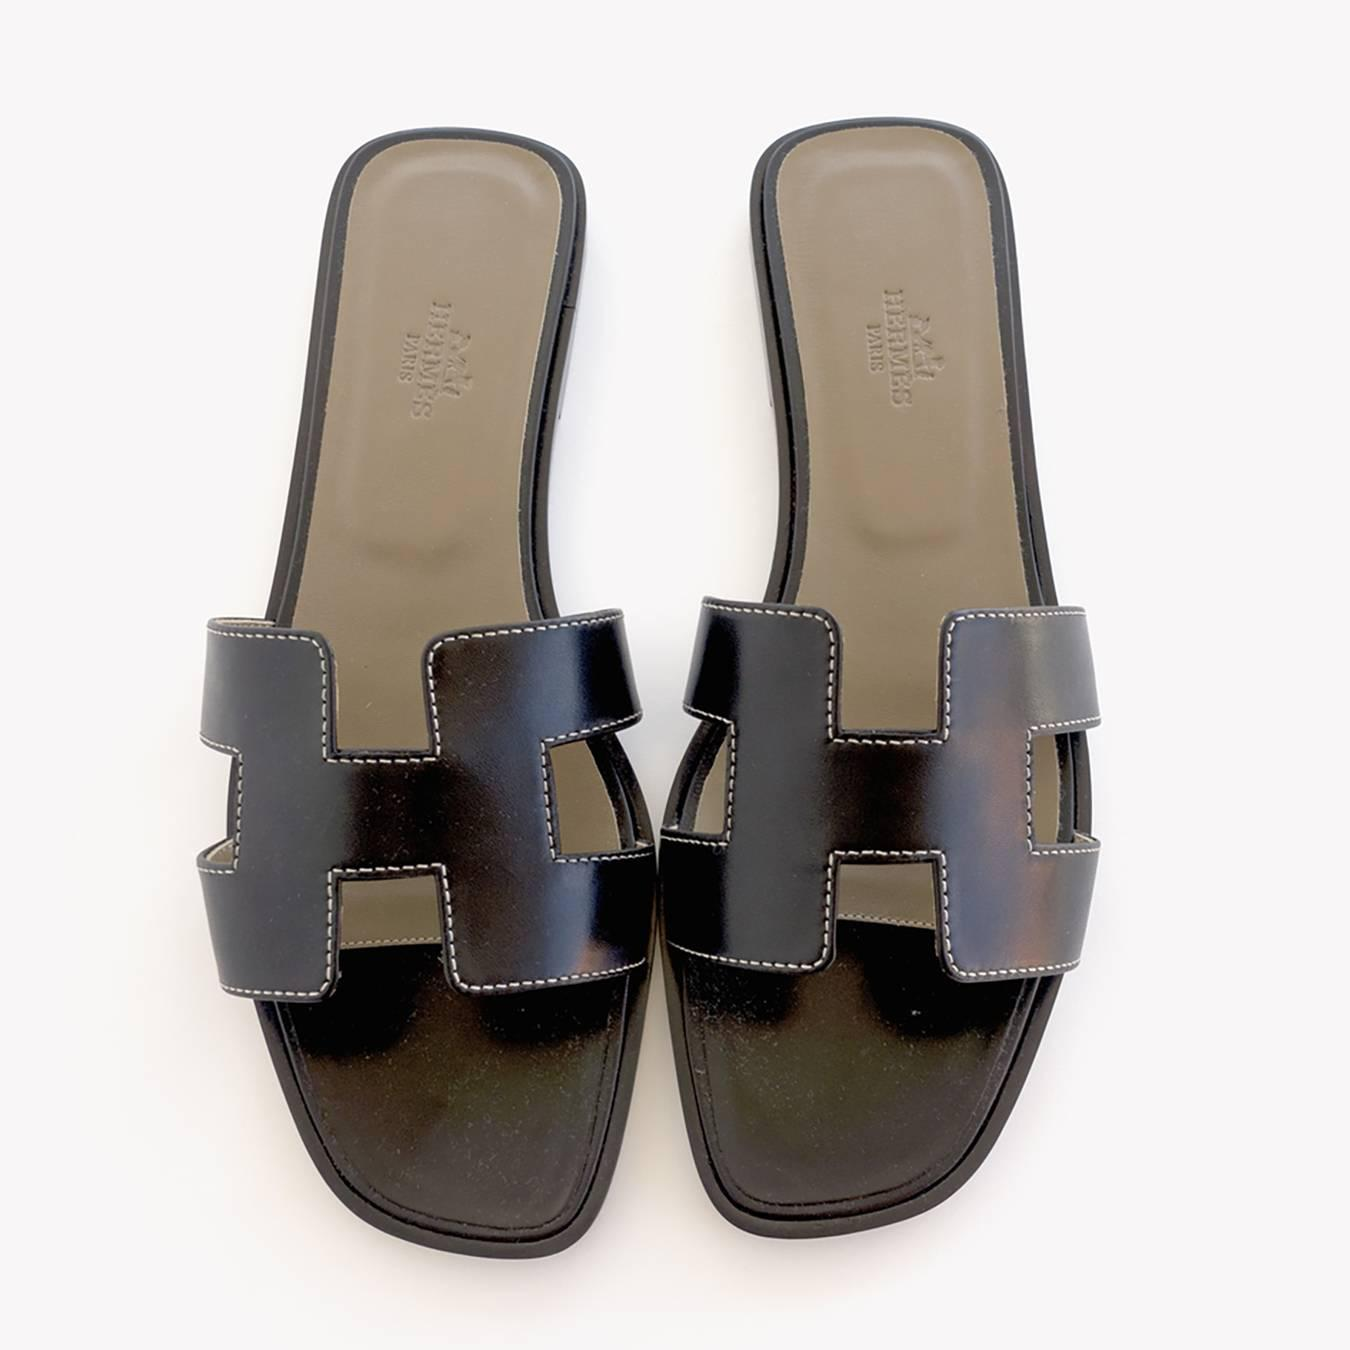 kelly handbags - Hermes Oran Black Box Leather Sandals White Stitching Size 40 or ...